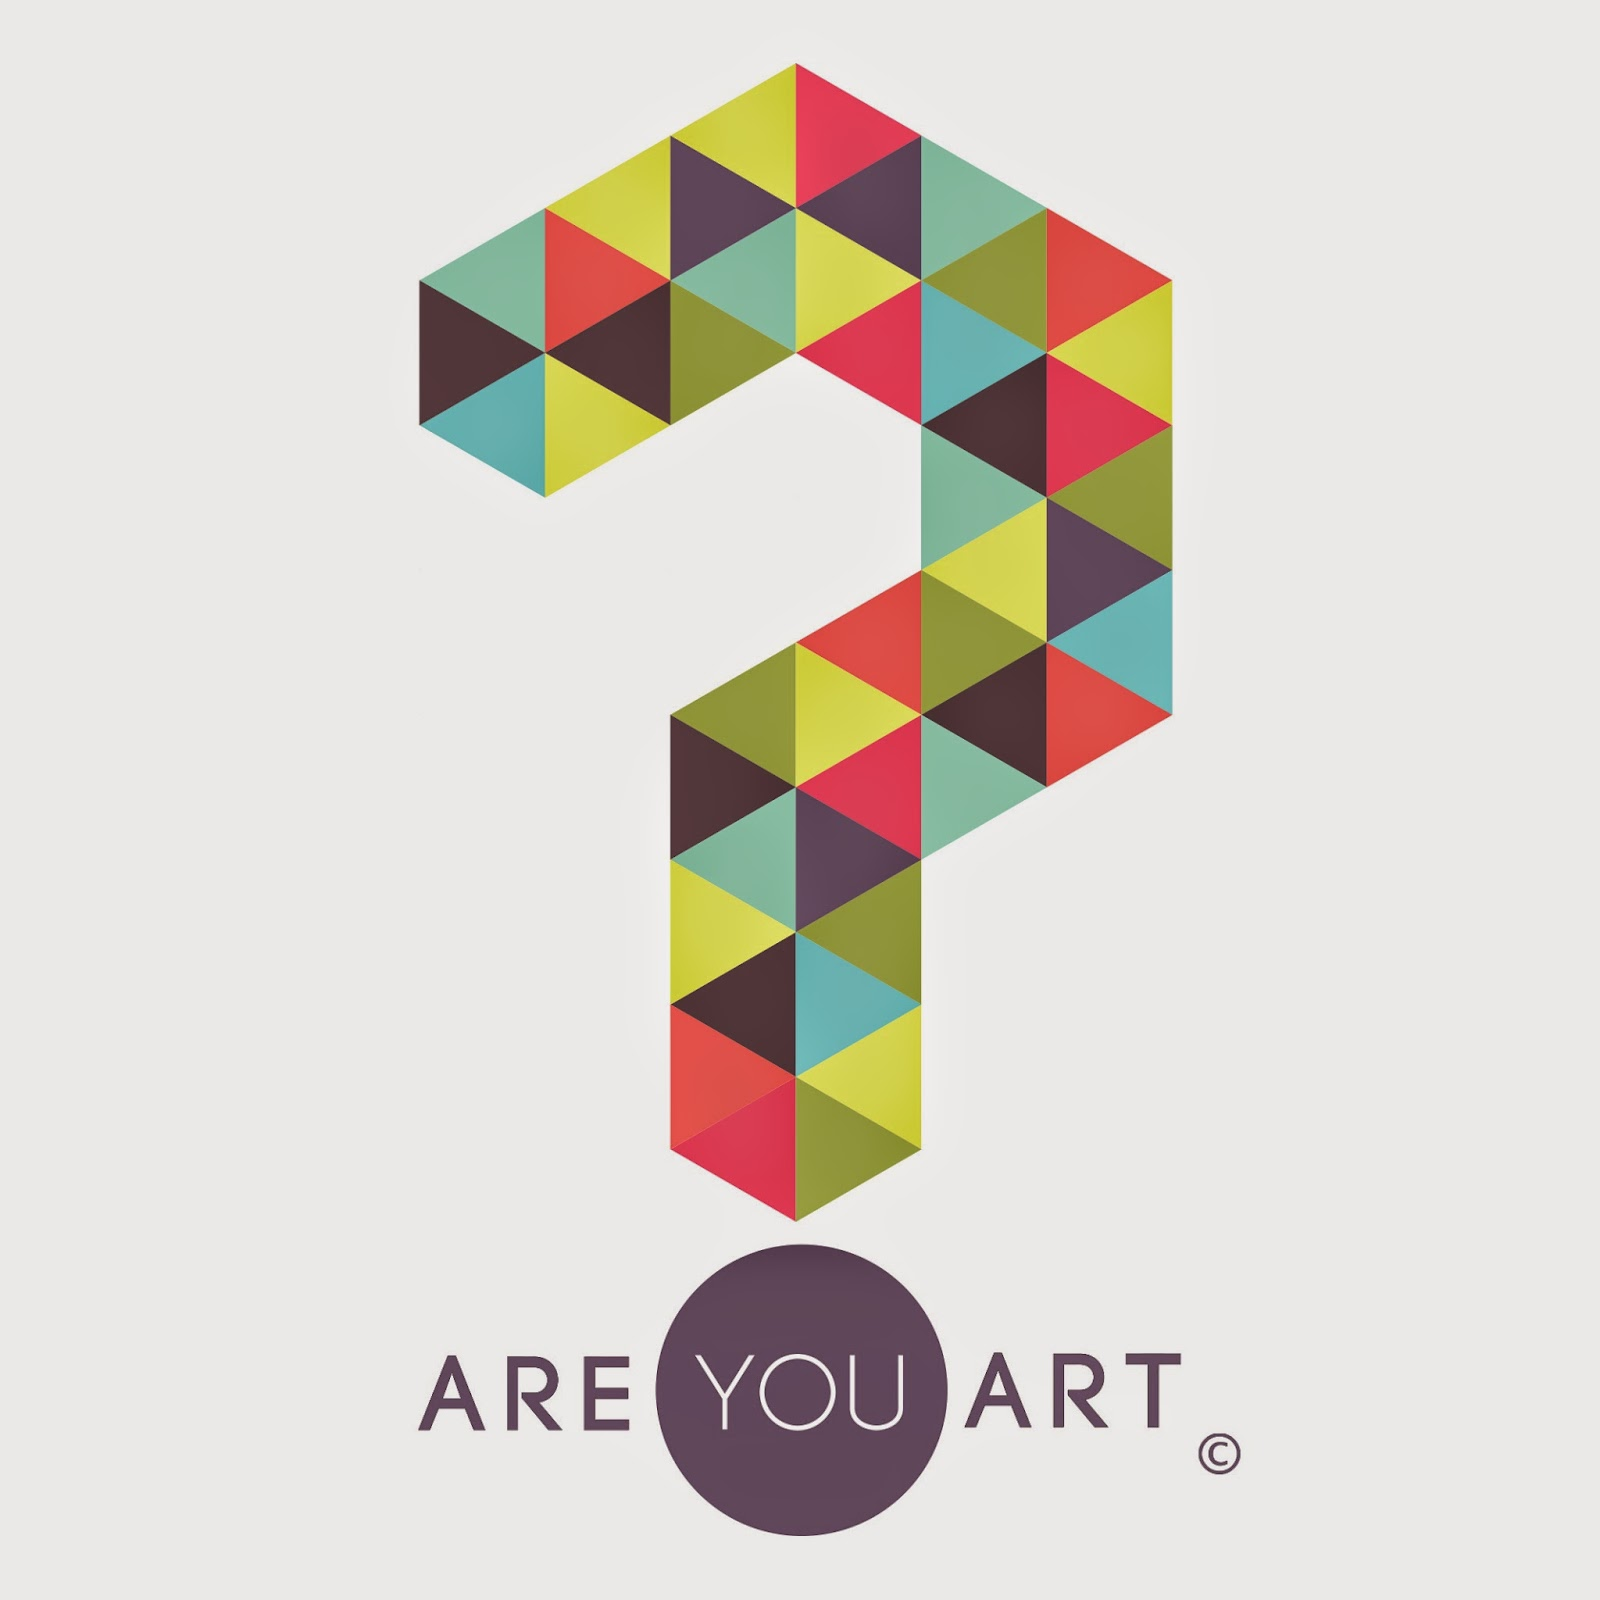 Are you art